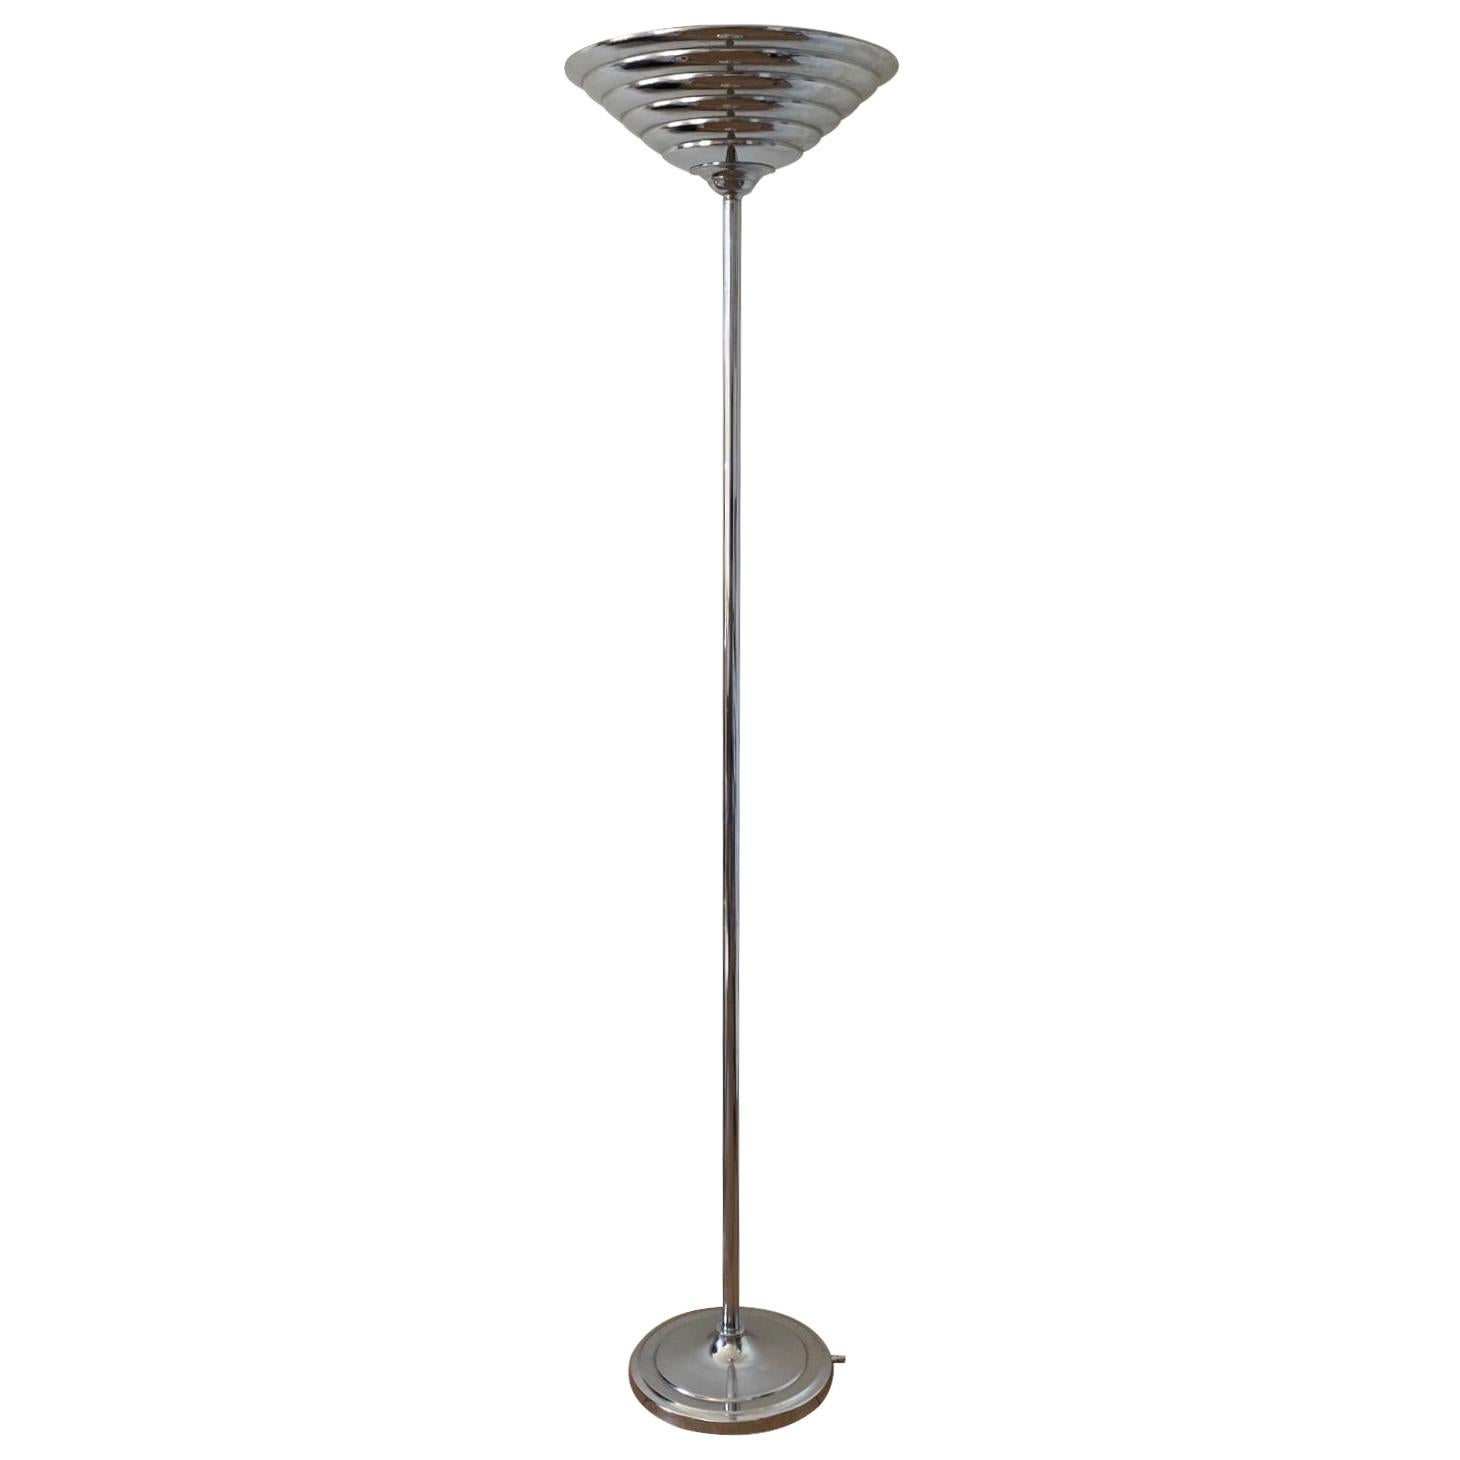 Art Deco, Machine Age Style, Floor lamp, Uplighter